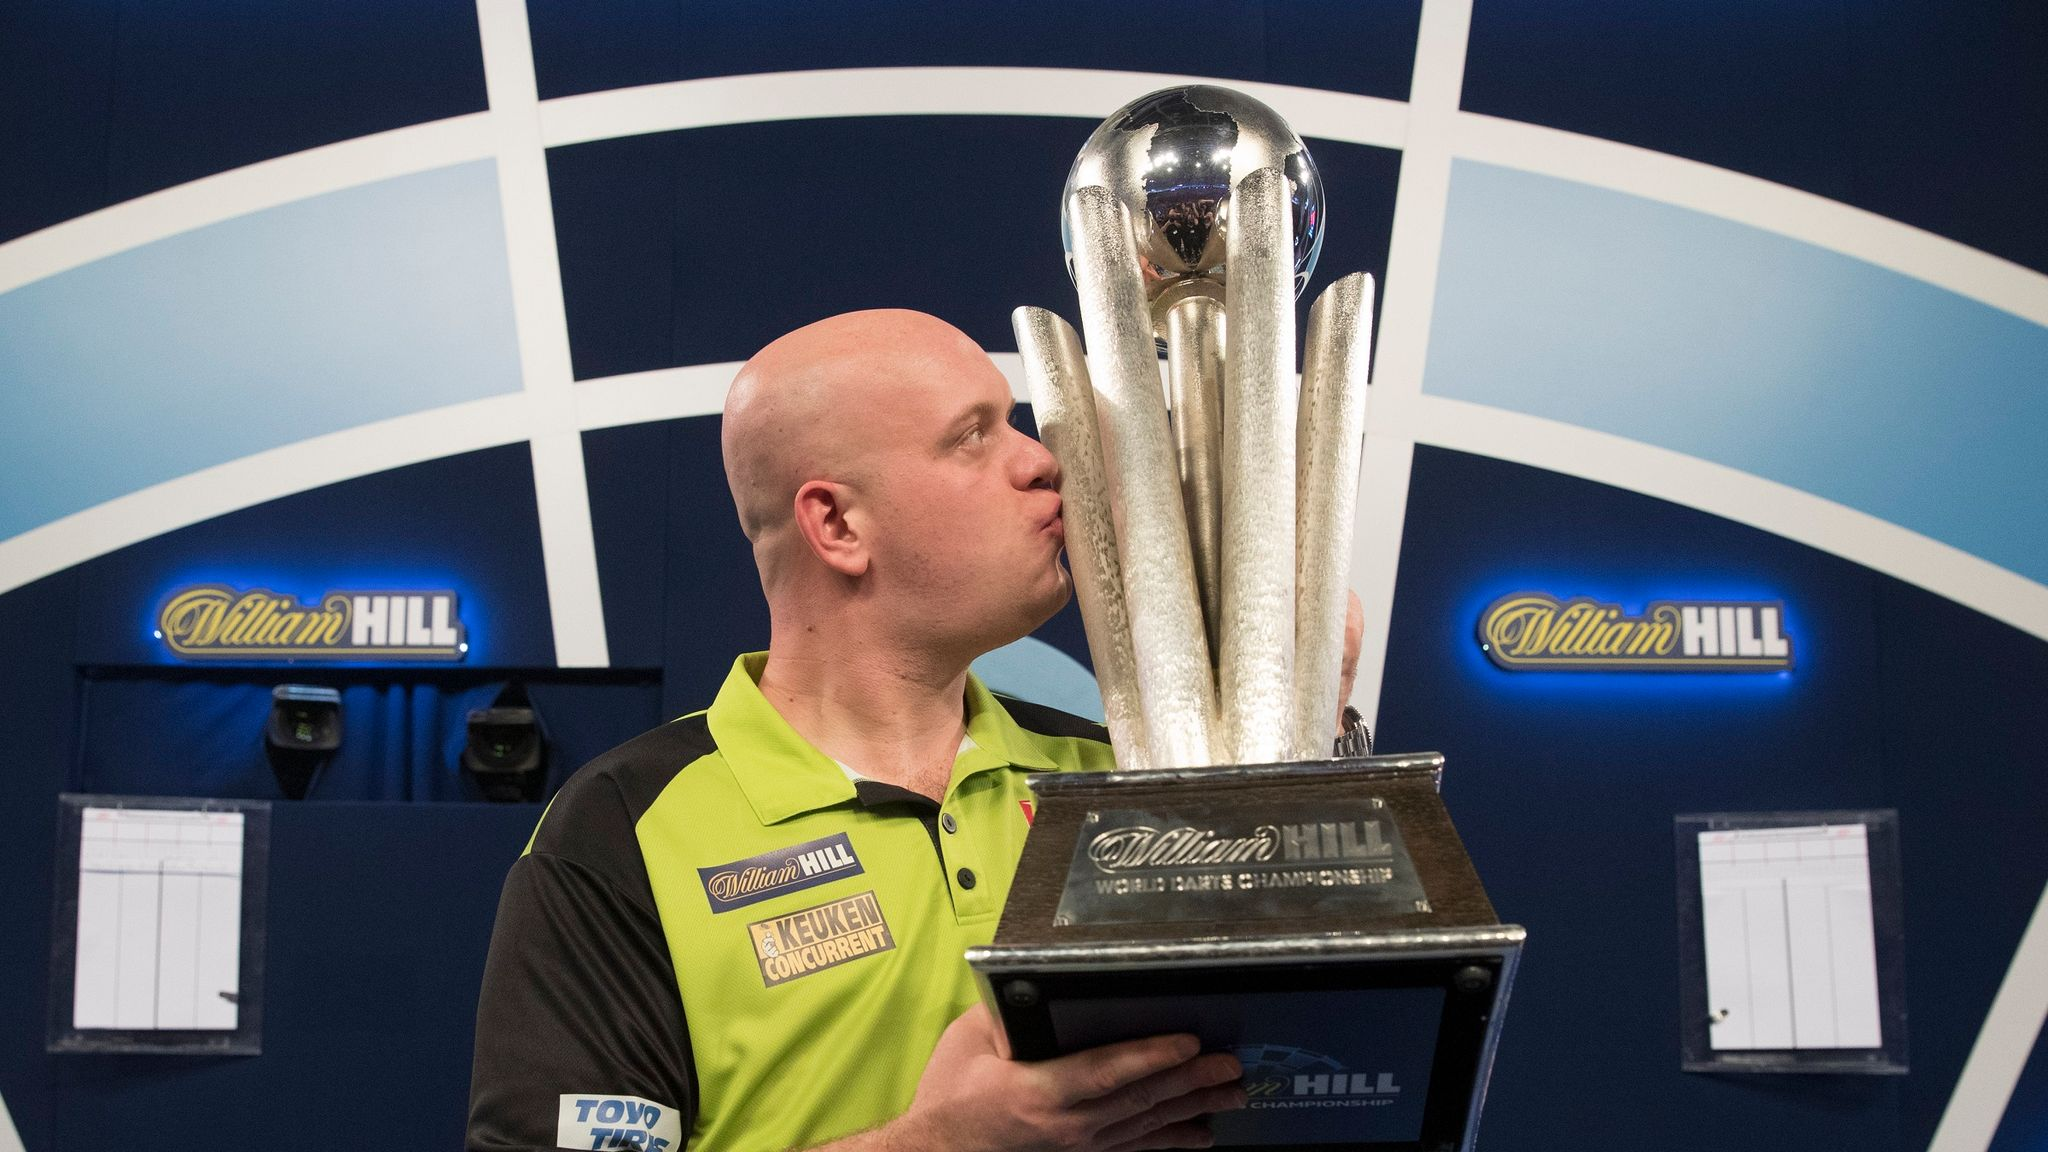 Michael van Gerwen defends World Championship crown as Raymond van Barneveld says goodbye